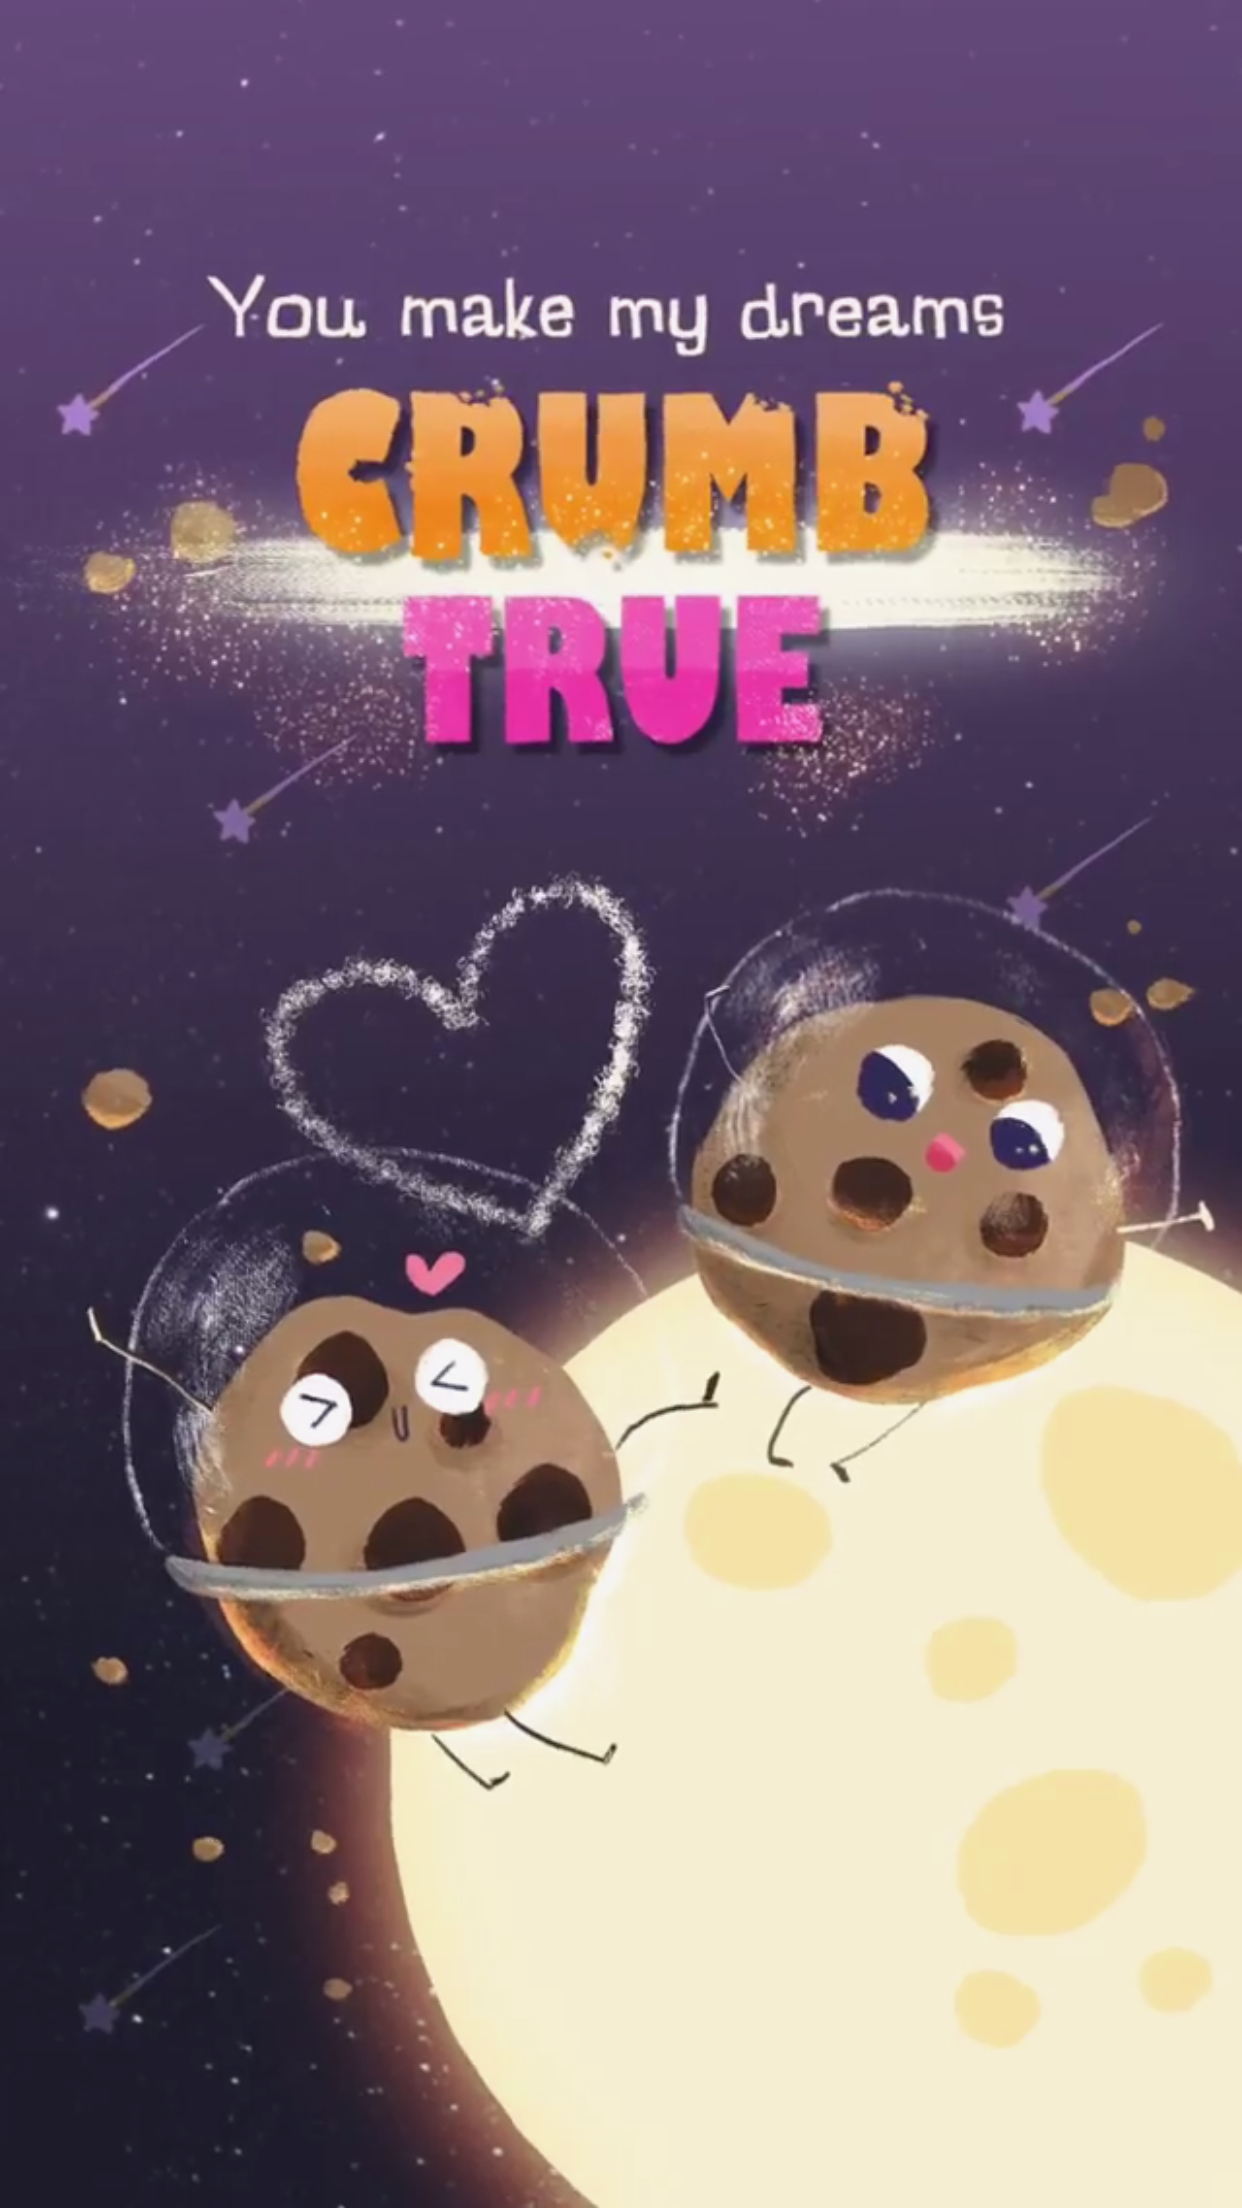 You Make My Dreams Crumb True Food Puns Cookie Crumbs Wallpaper Background Lock Screen For Android Cellphone Iphon Cute Puns Funny Wedding Cards Cute Jokes